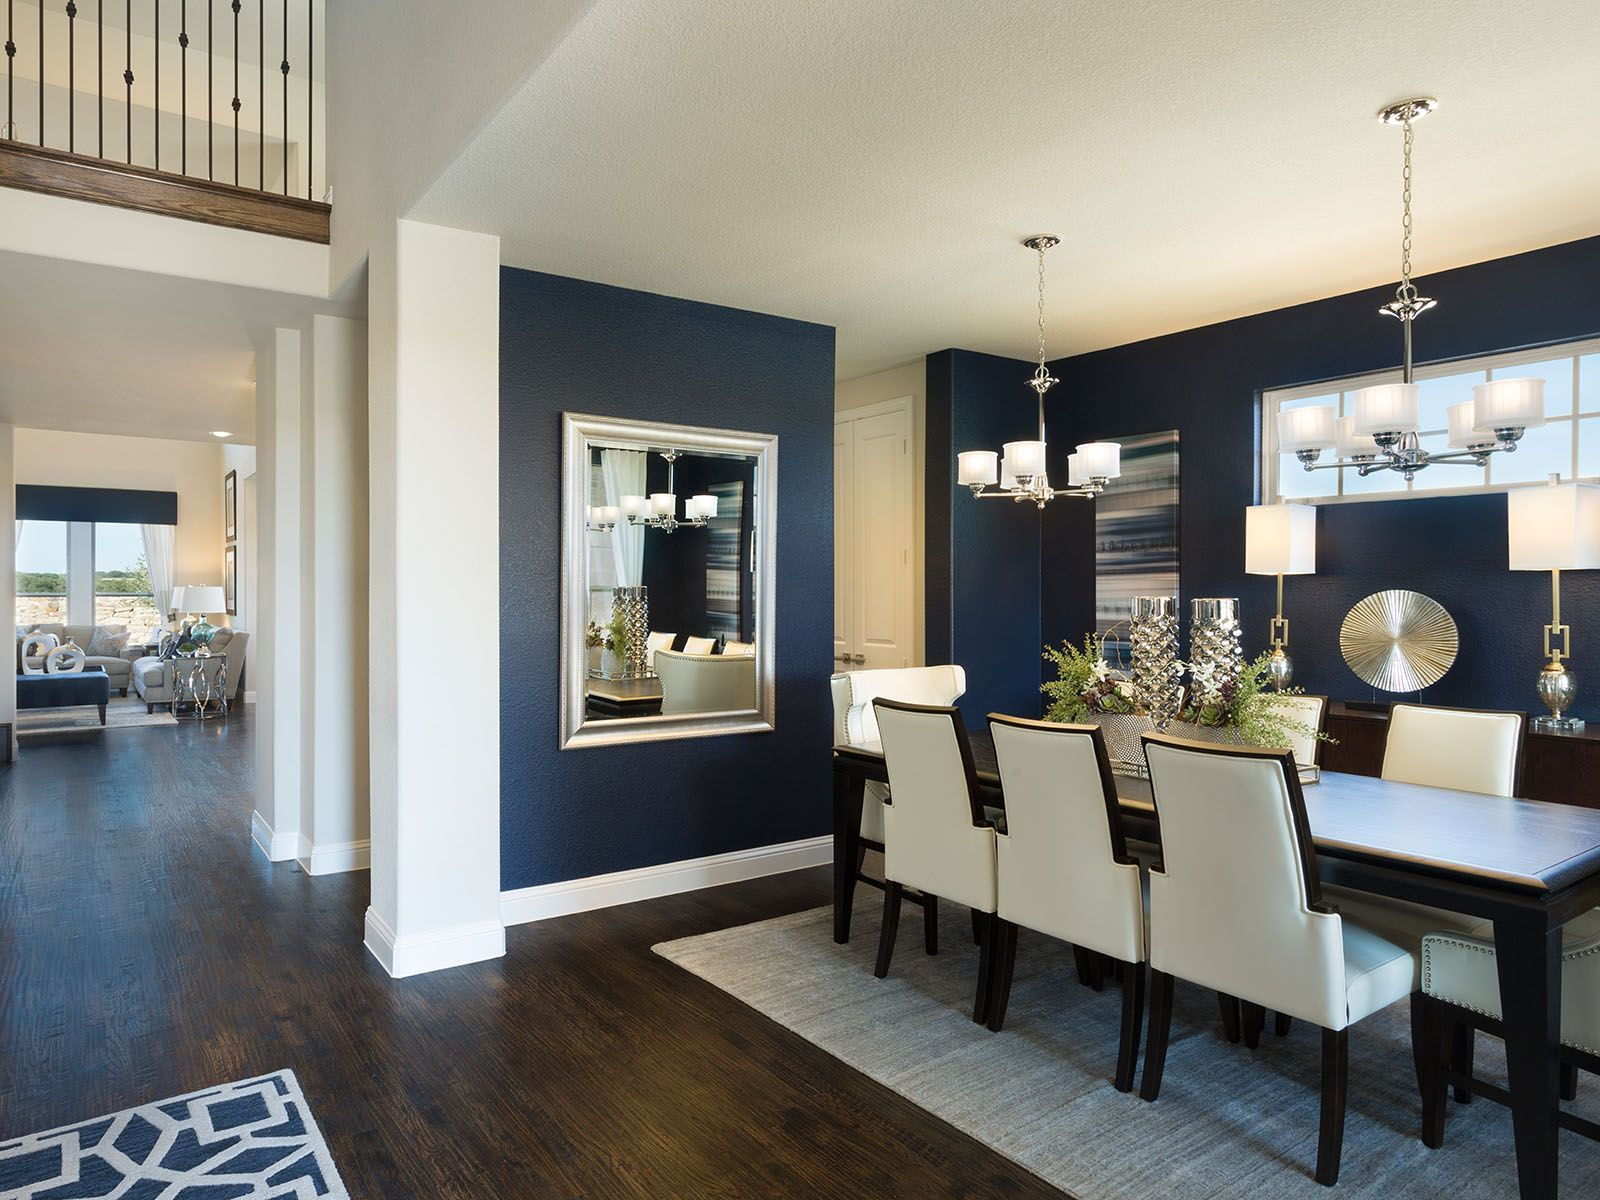 Blue-Green Painted Room Inspiration | Blue green rooms ...